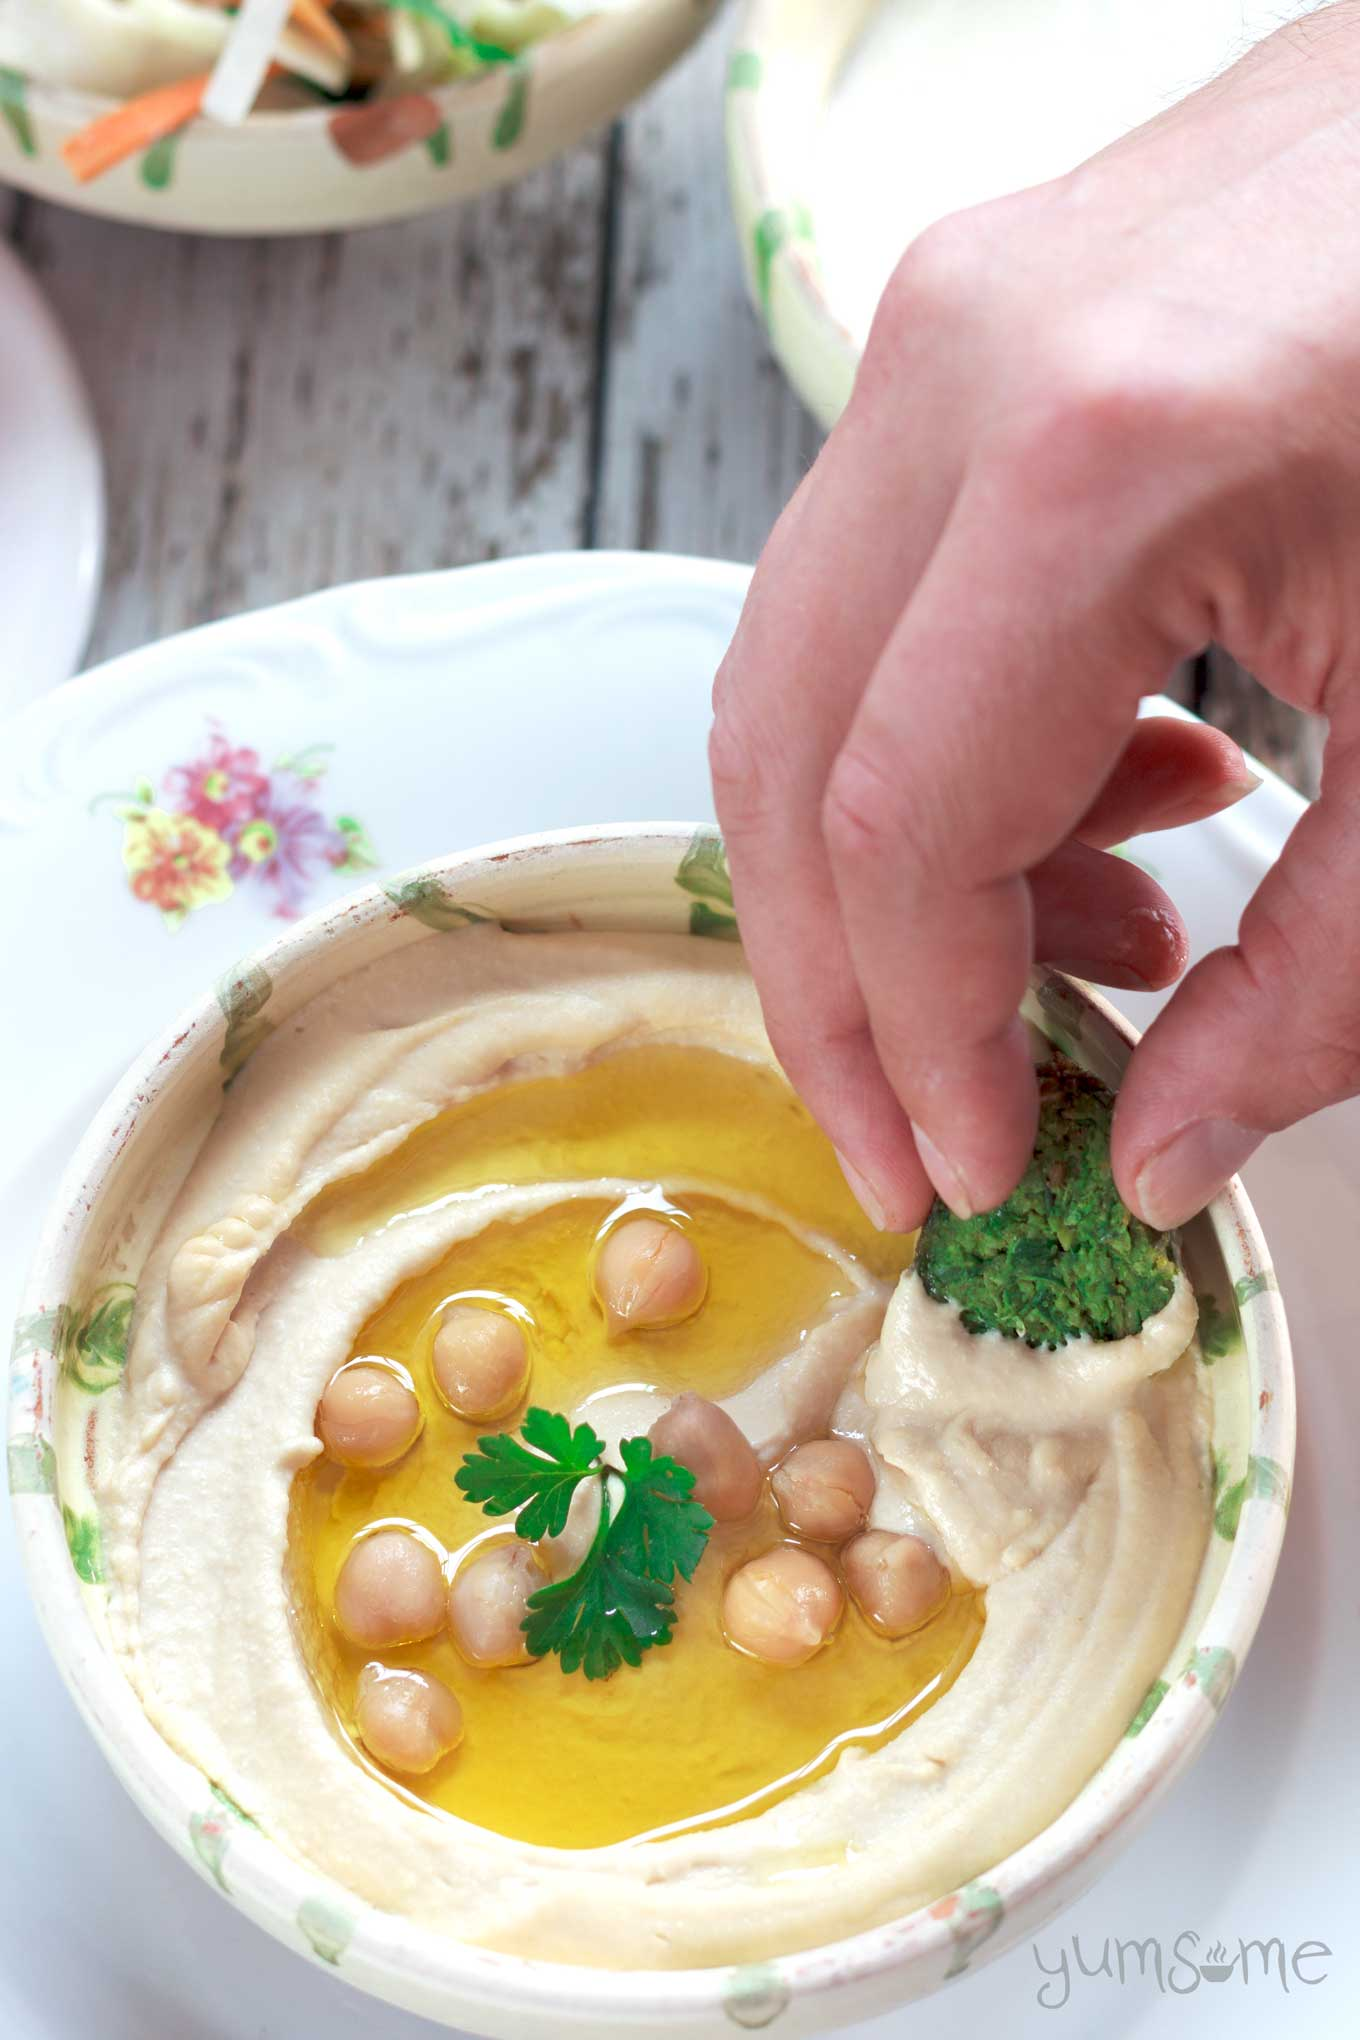 falafel dipped into a bowl of perfectly smooth and creamy hummus | yumsome.com